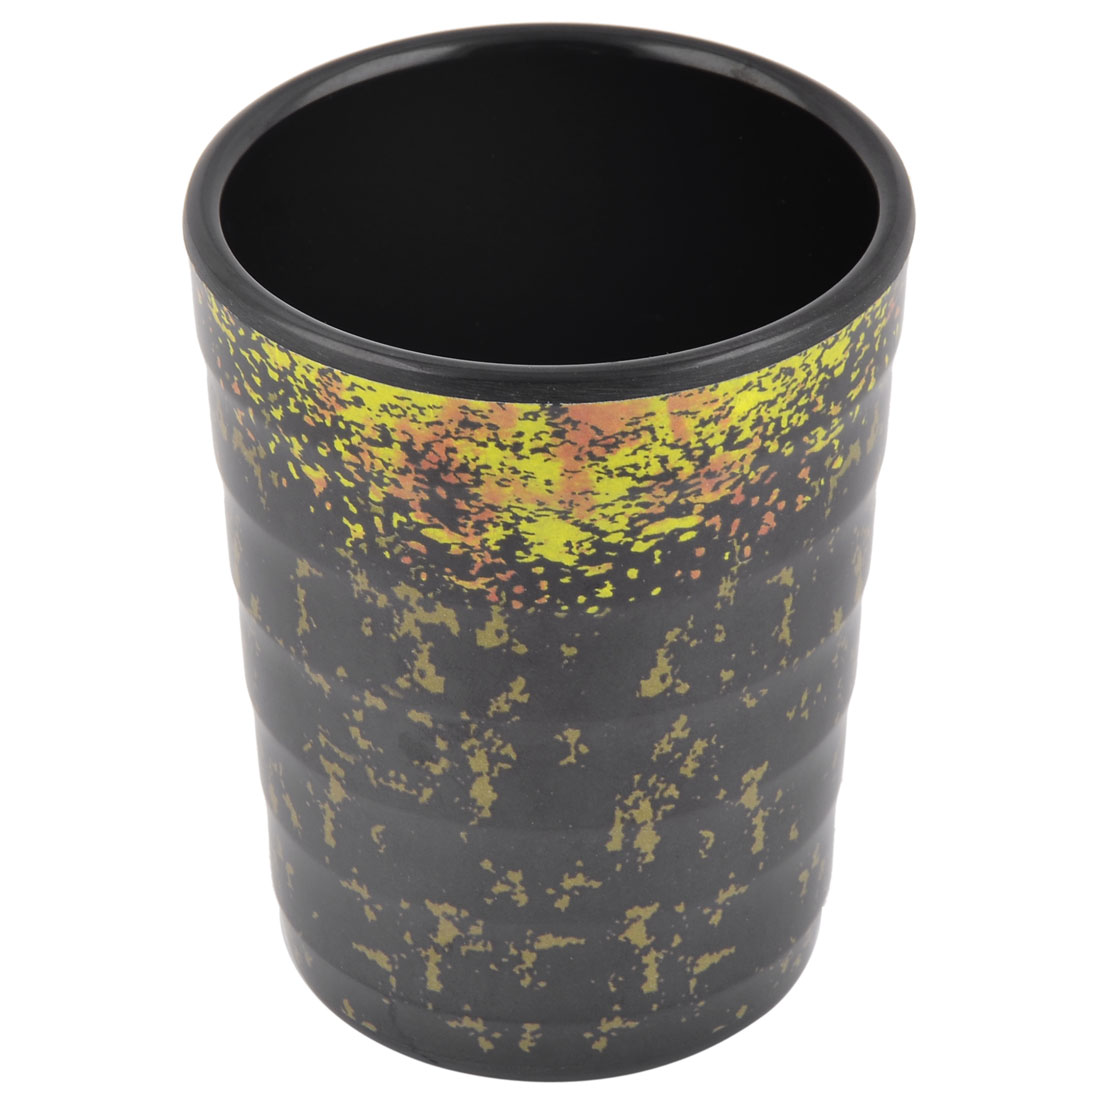 Family Kitchen Melamine Cylinder Coffee Drinking Storage Cup Mug Black Yellow